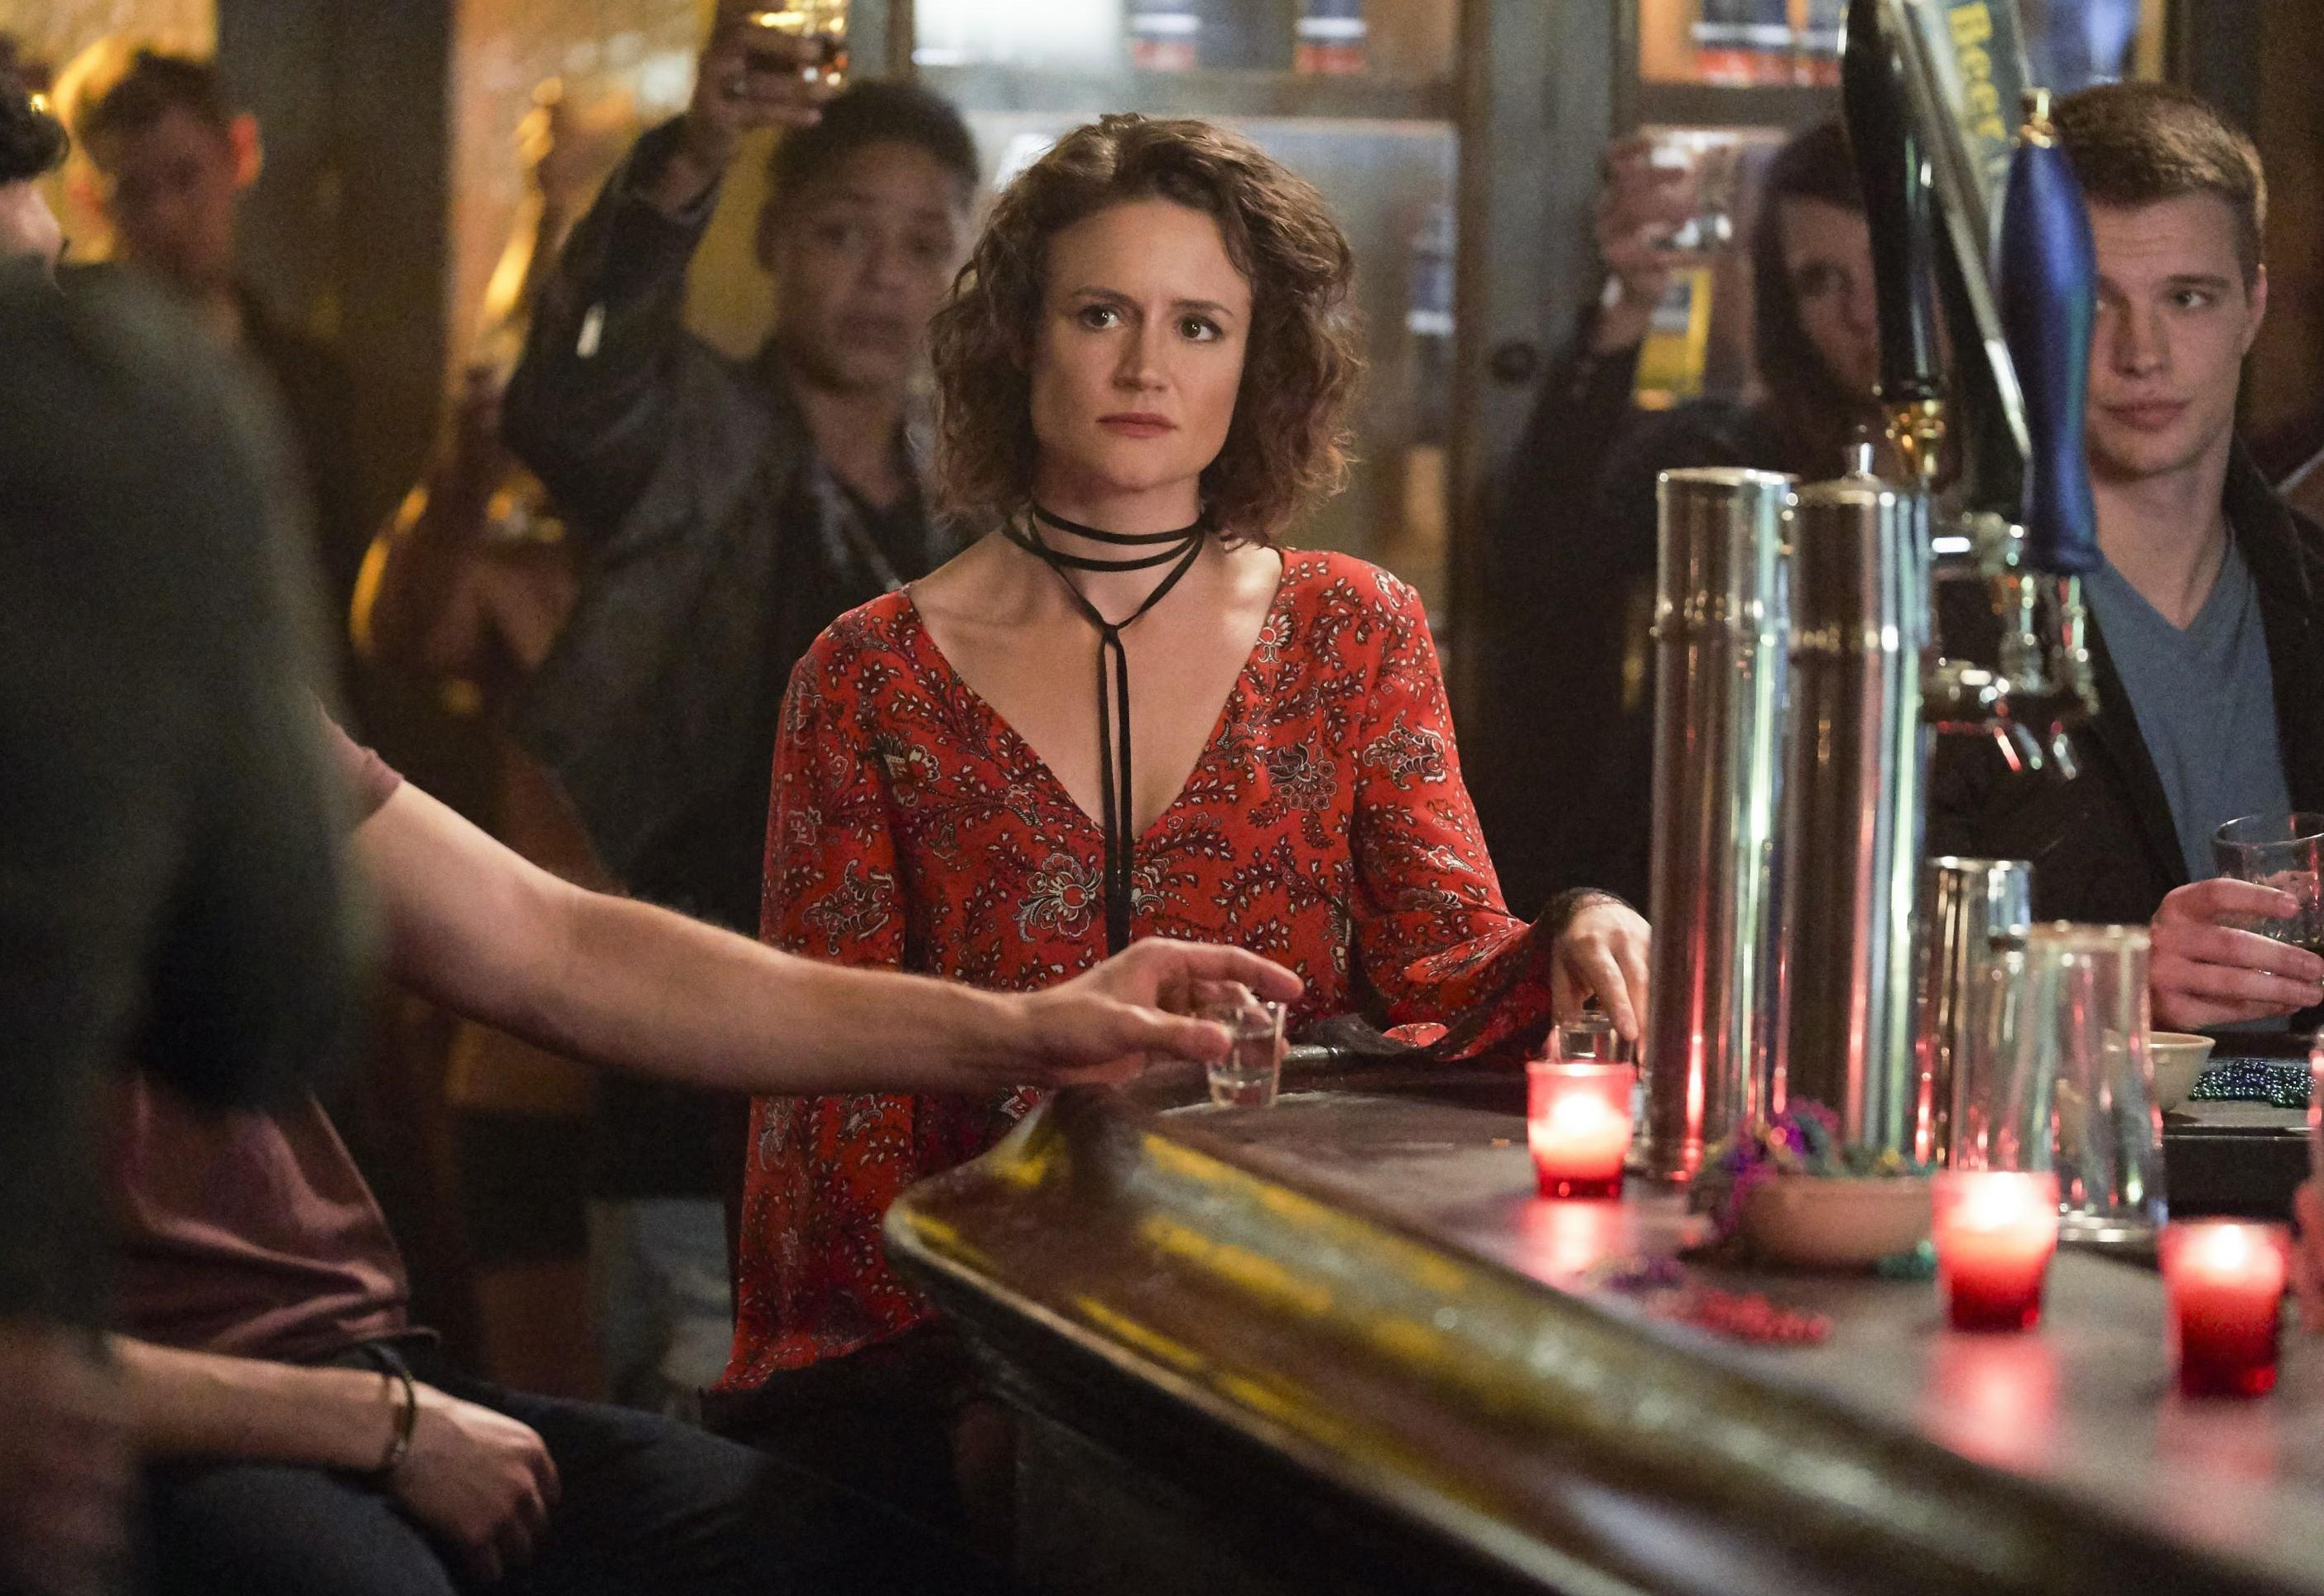 5*02 - One Wrong Turn On Bourbon (25/04/2018) The-originals-5x02-photo-2